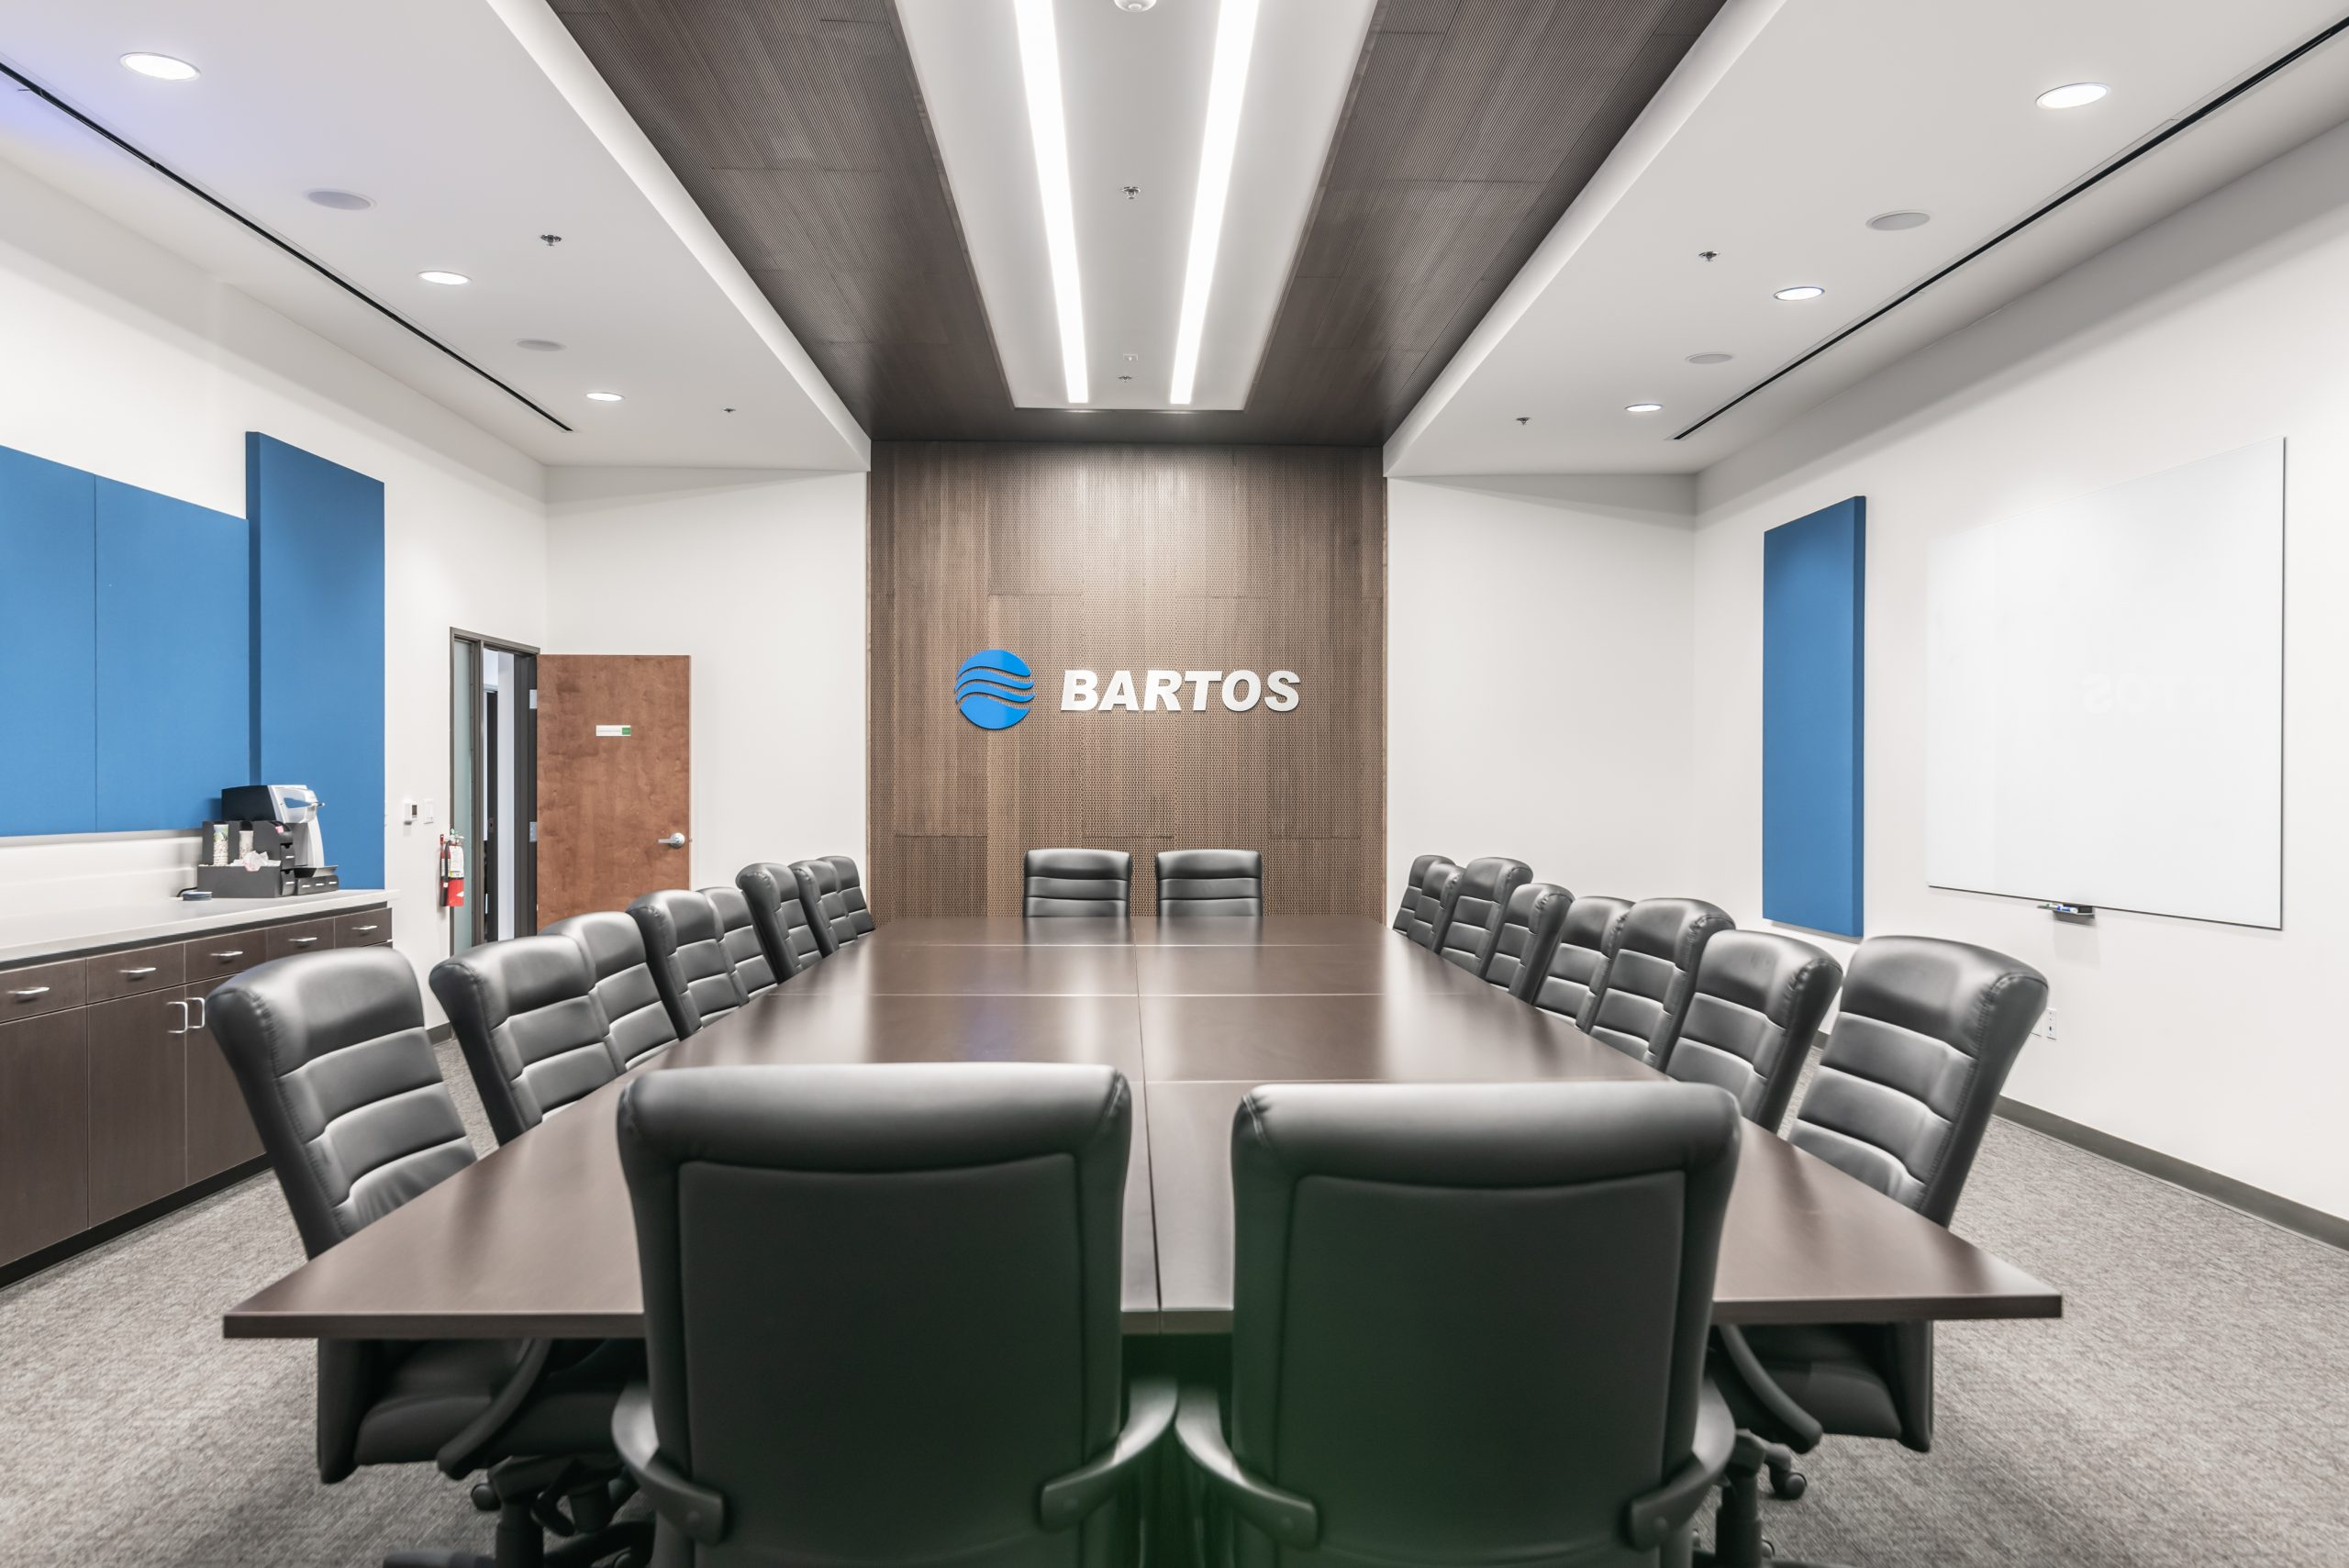 Bartos-Conference-Room-4-scaled